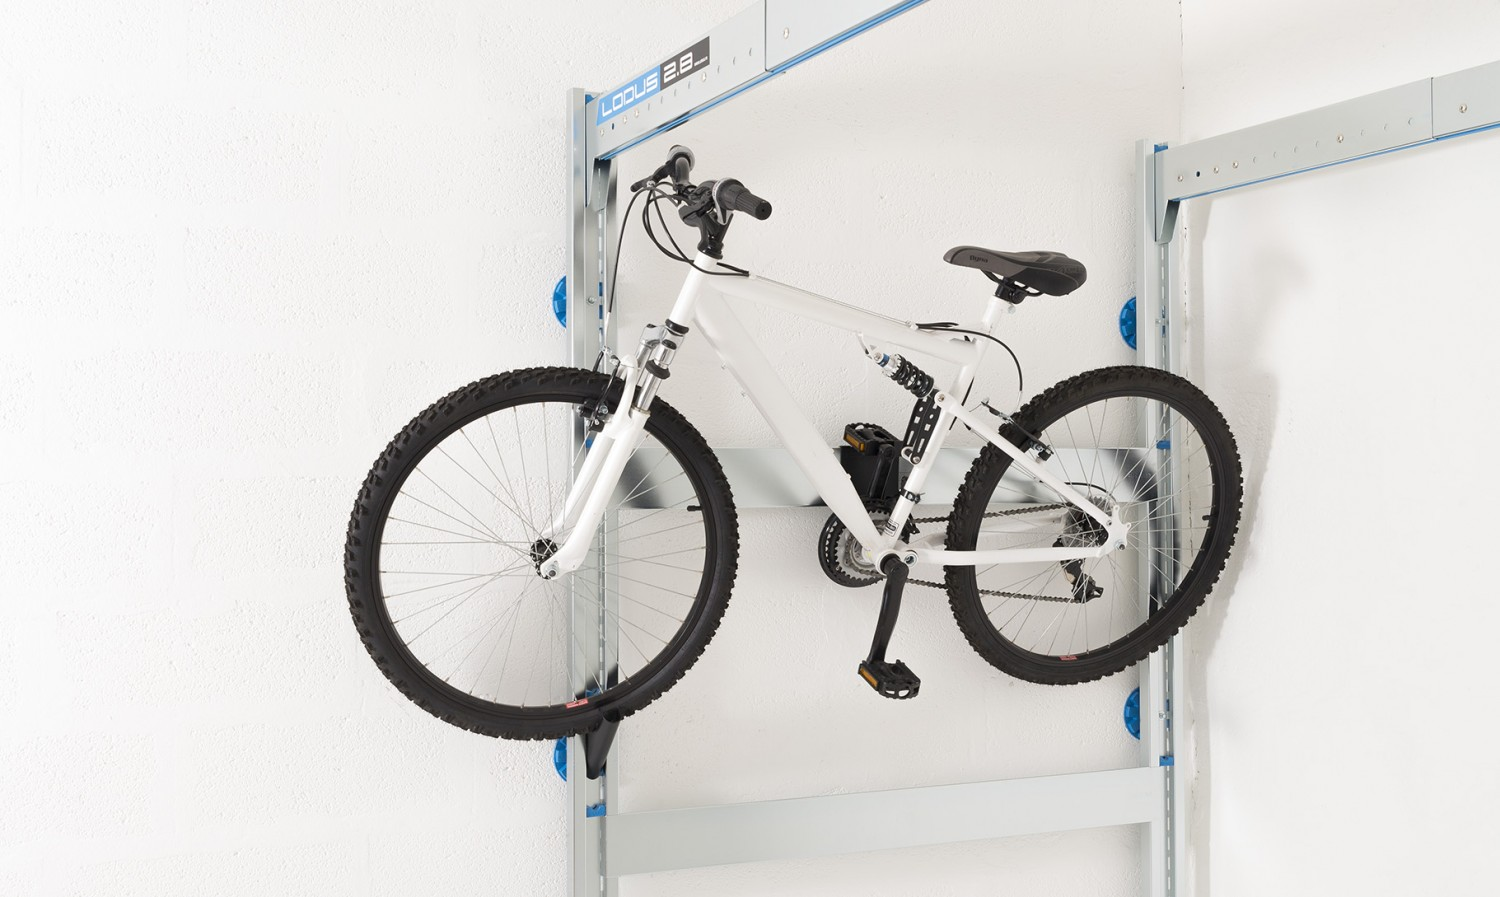 Porte v lo simple pour rangement de garage lodus ref 51030 - Accrocher velo garage ...